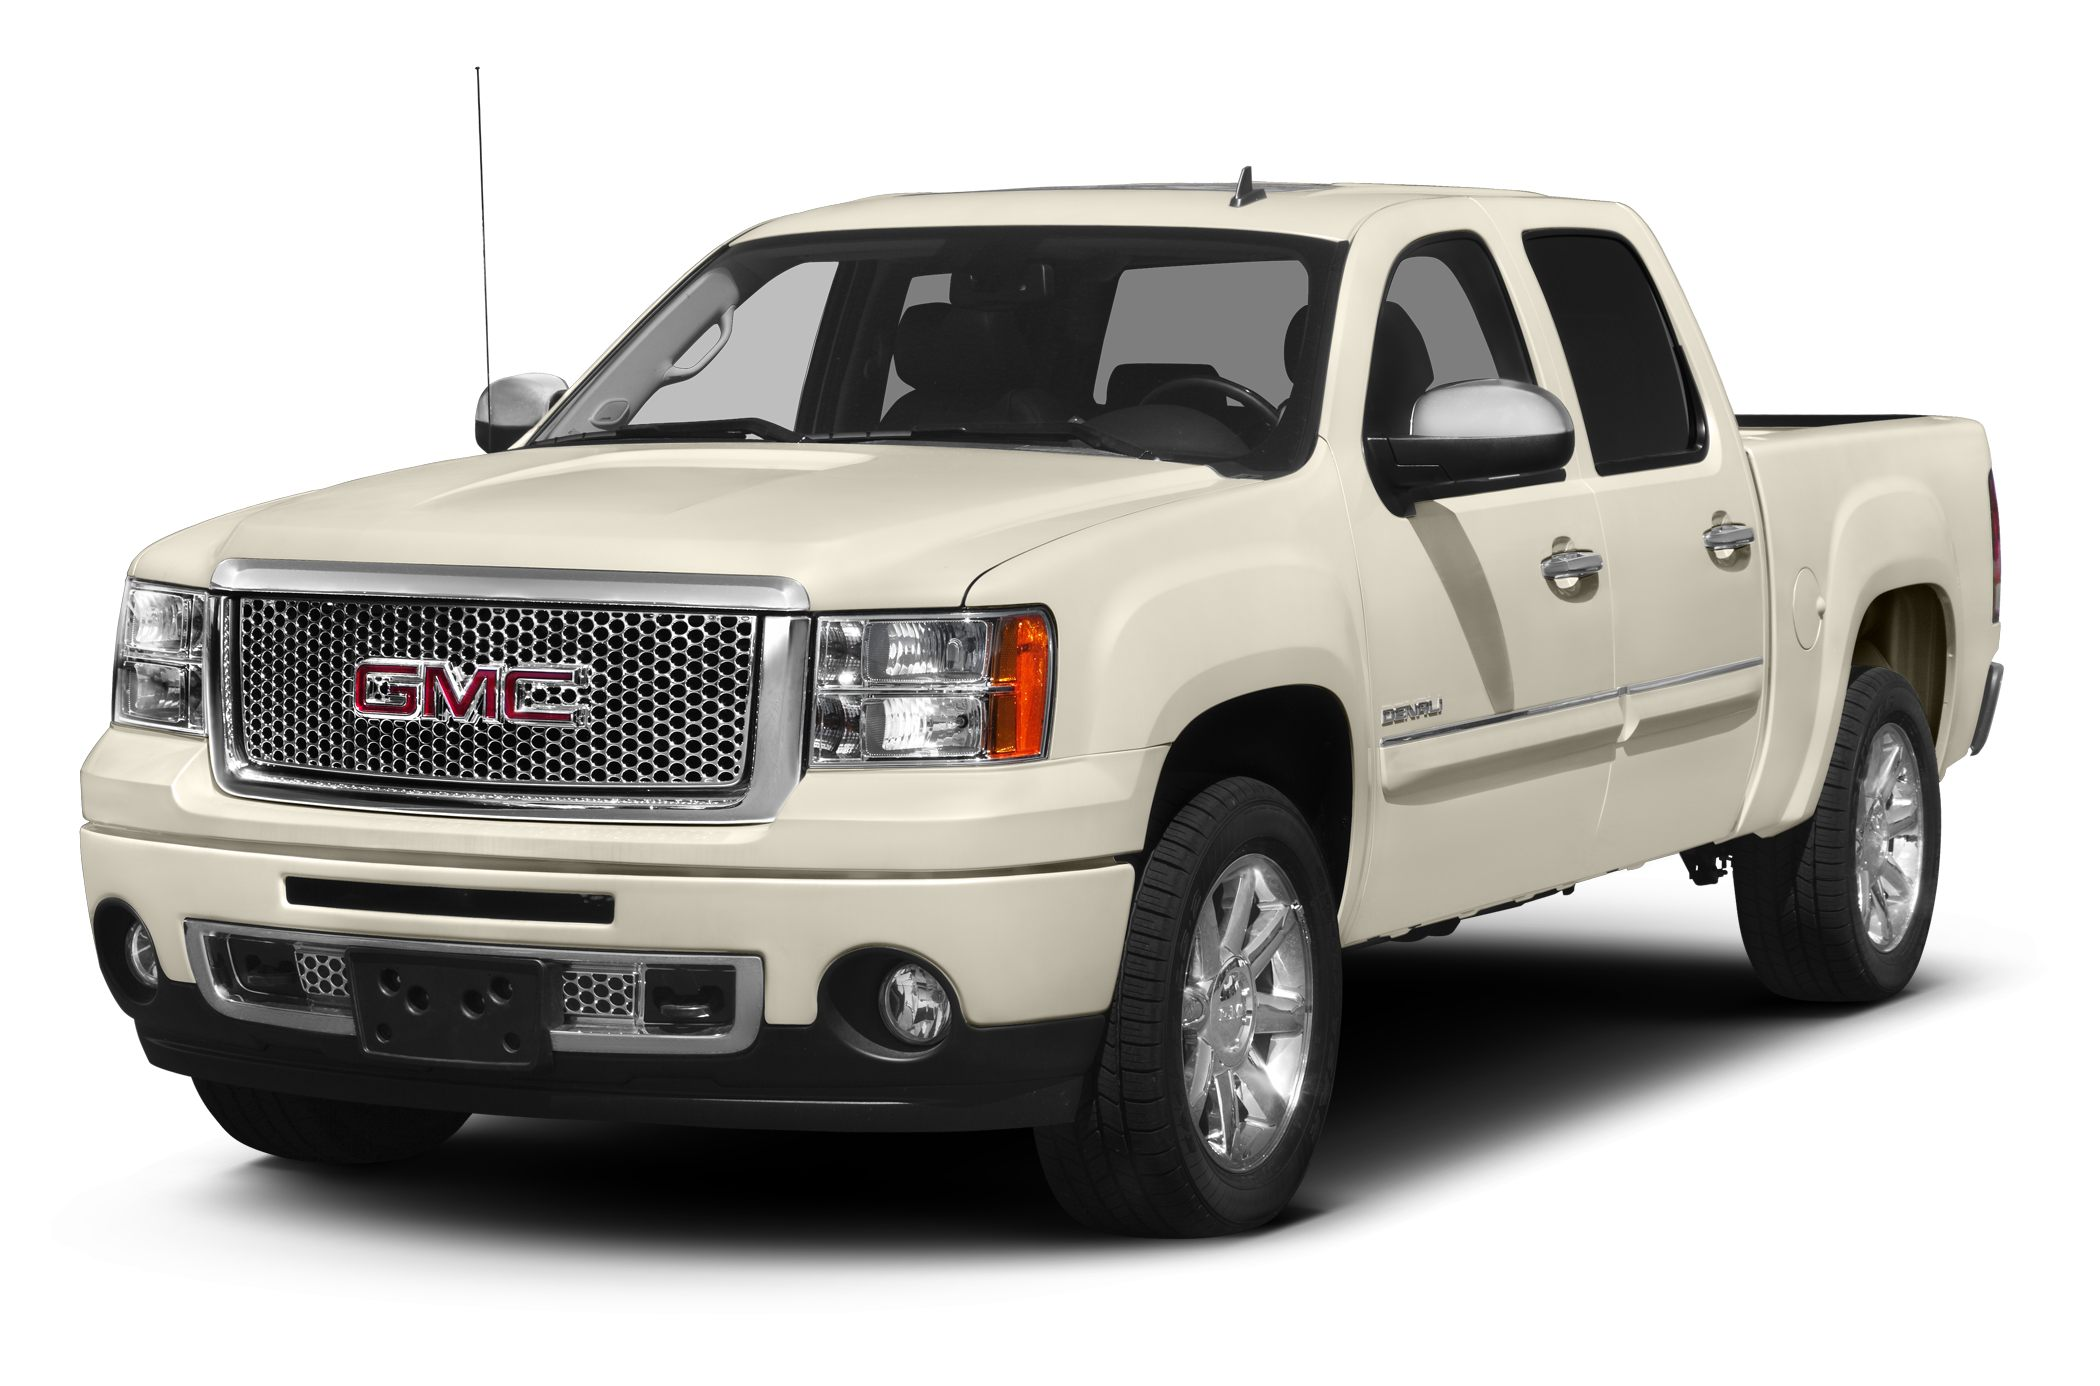 2012 GMC Sierra 1500 Denali Crew Cab Pickup for sale in Lake Charles for $27,995 with 101,928 miles.